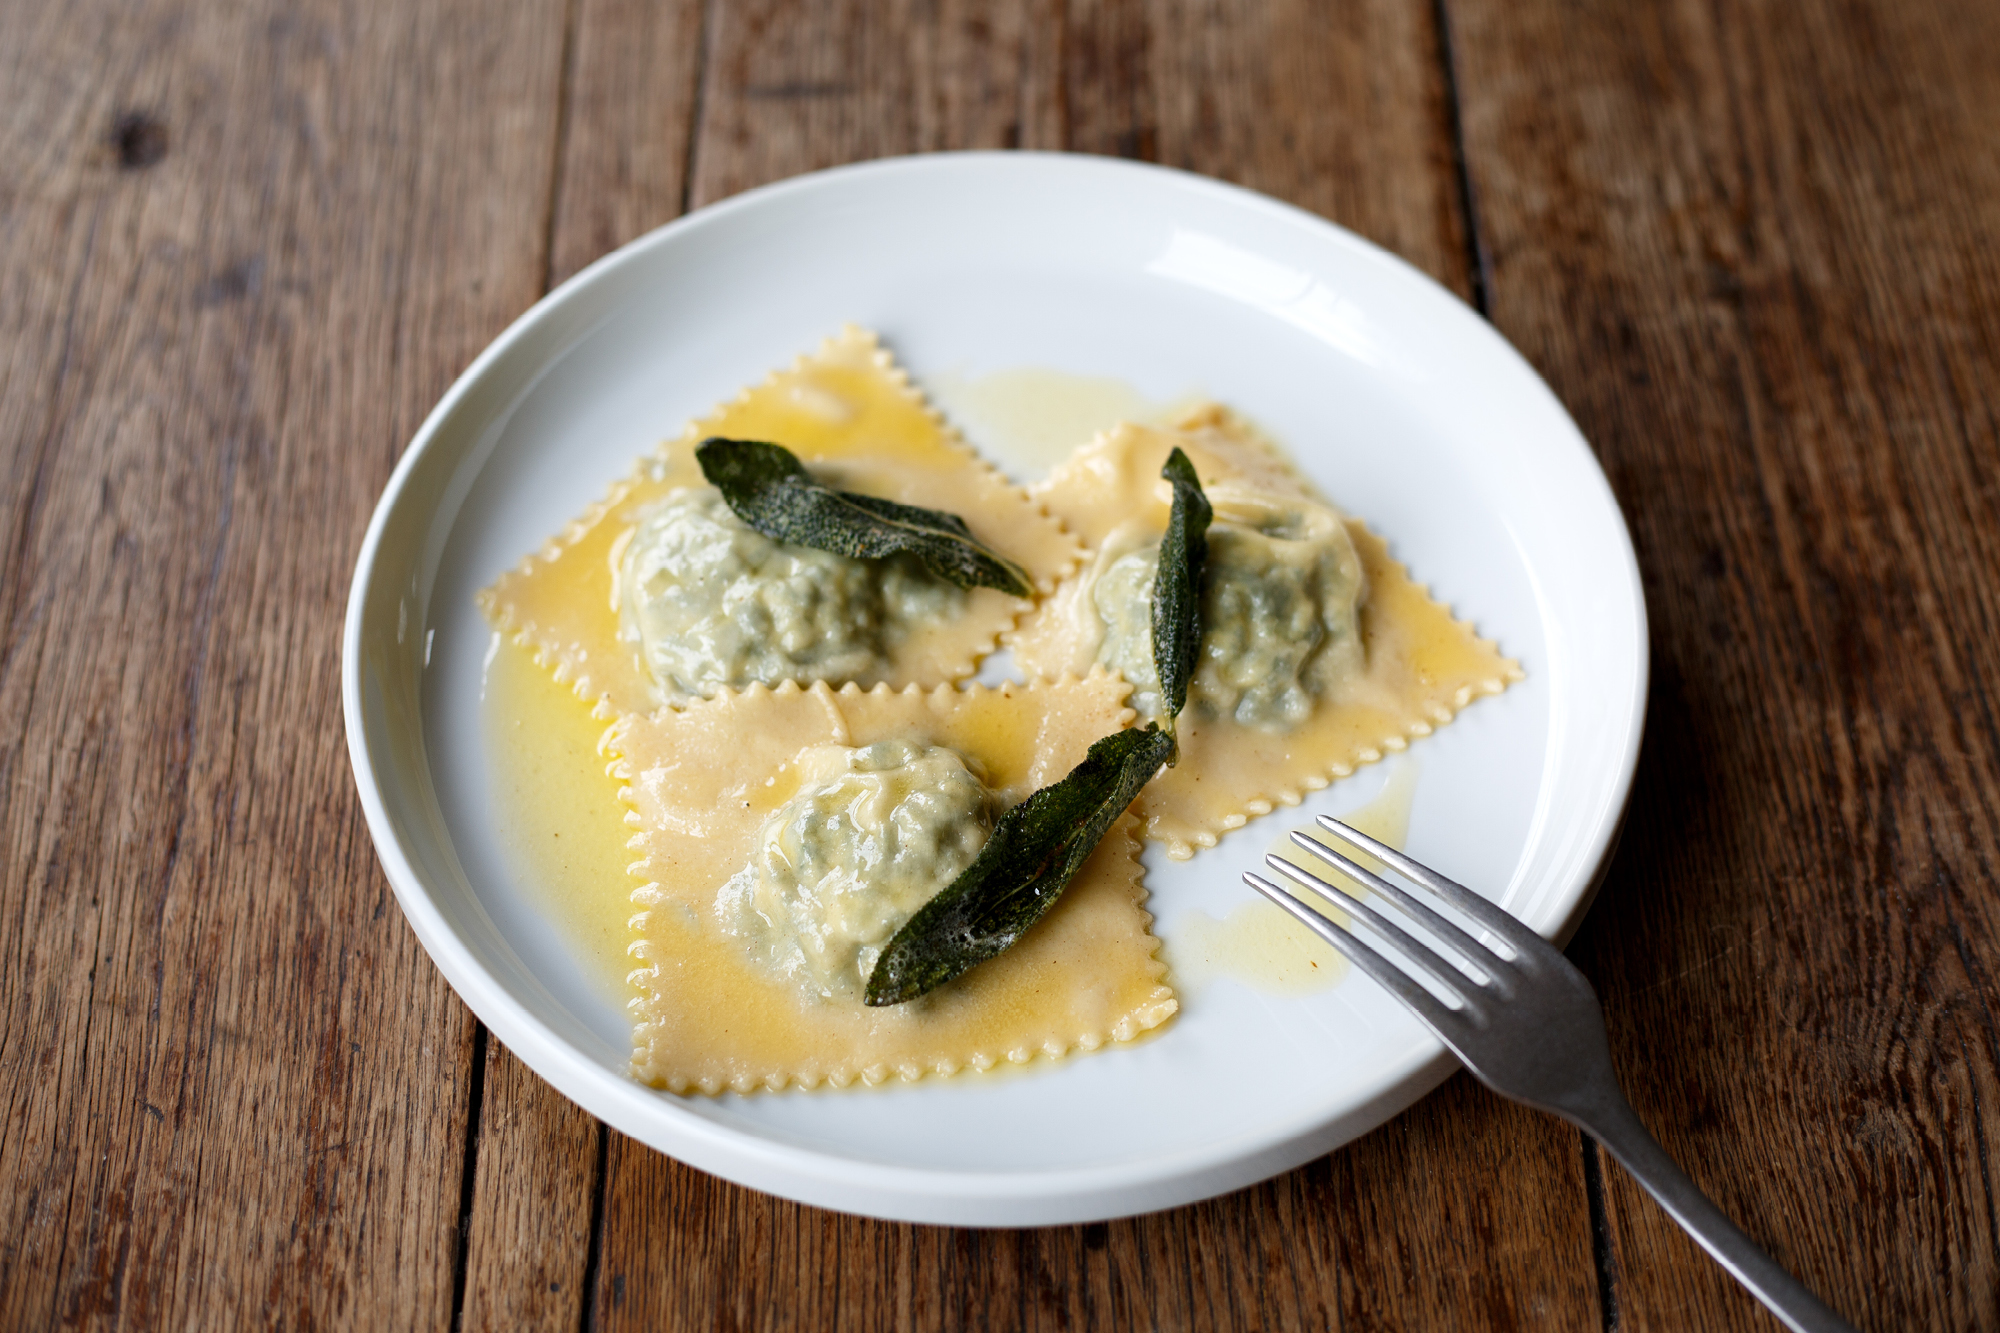 Maremma focuses on fresh pasta